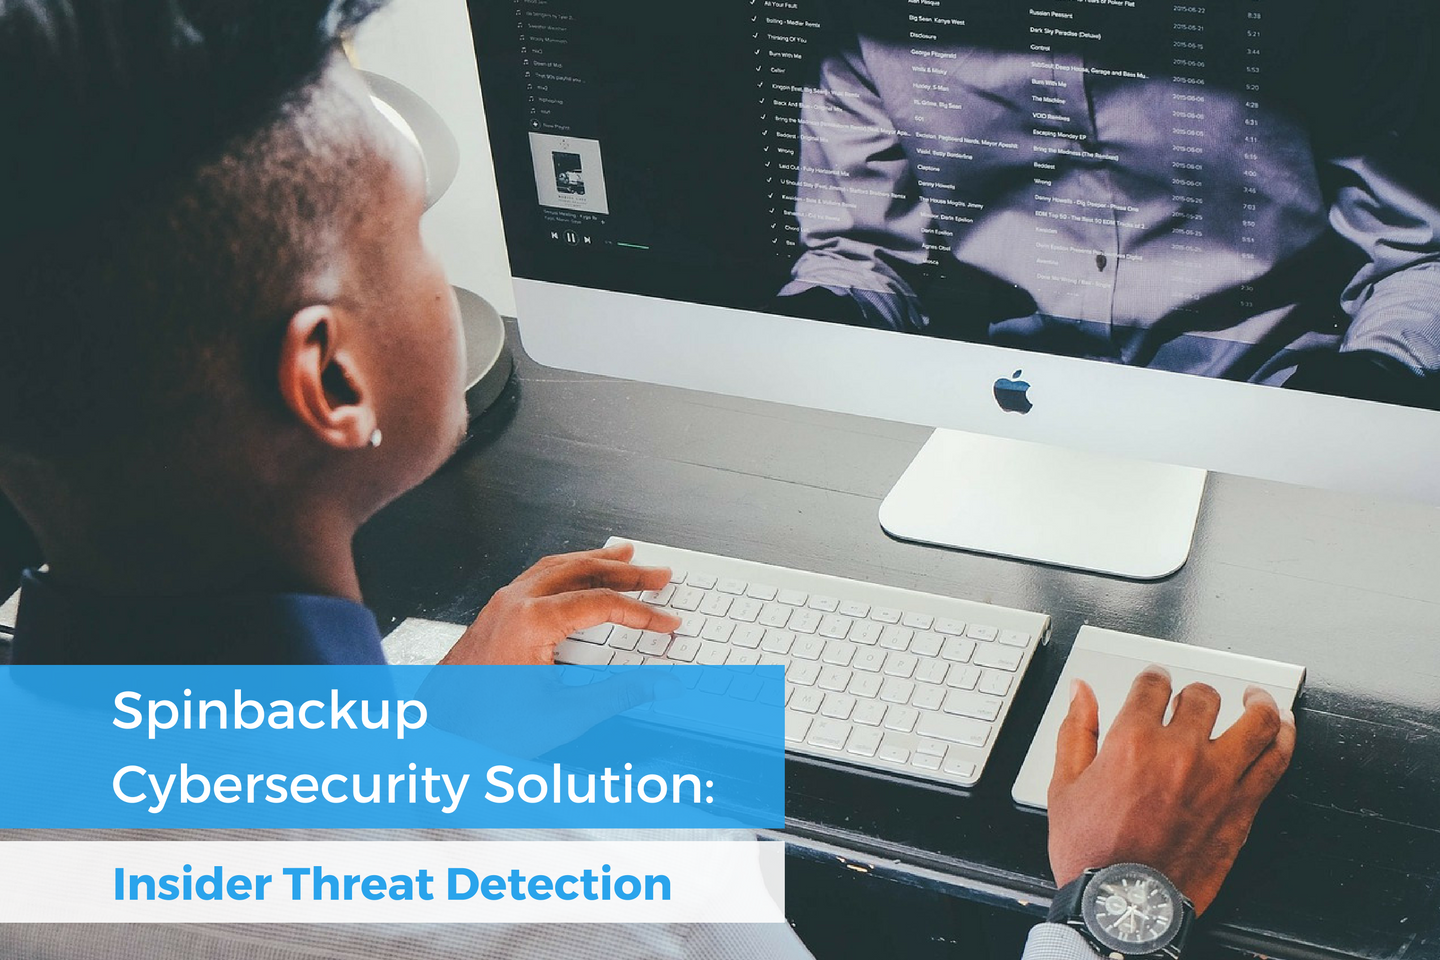 Spinbackup Cybersecurity Solution